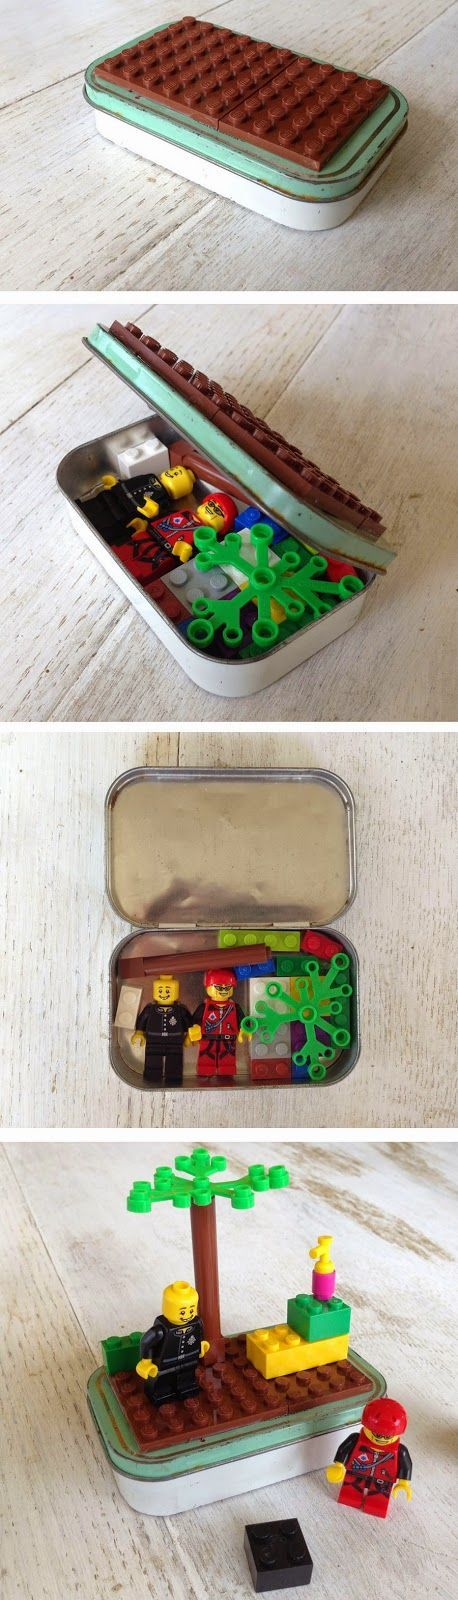 Here's a creative way to pack and store little Legos. #OperationChristmasChild